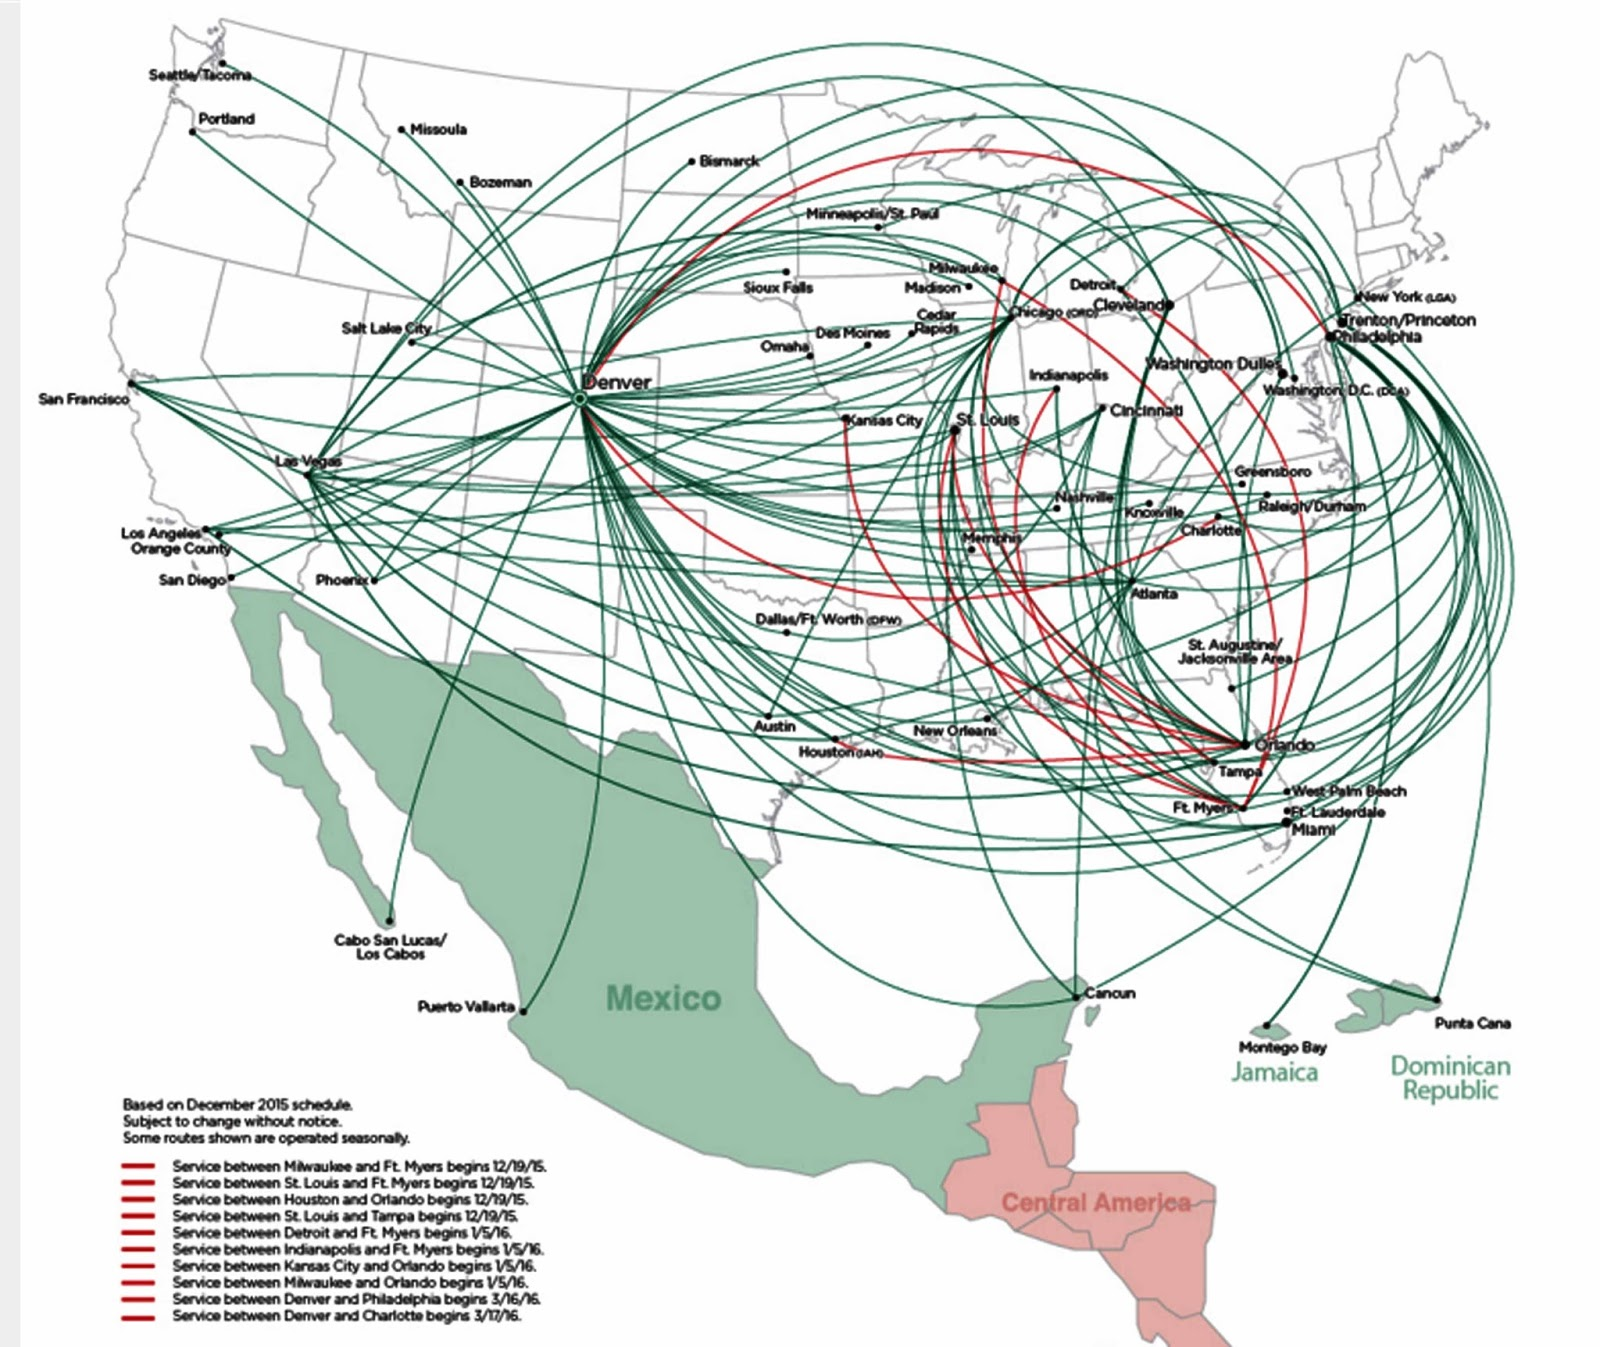 frontier airlines routemap covering a lot of territory